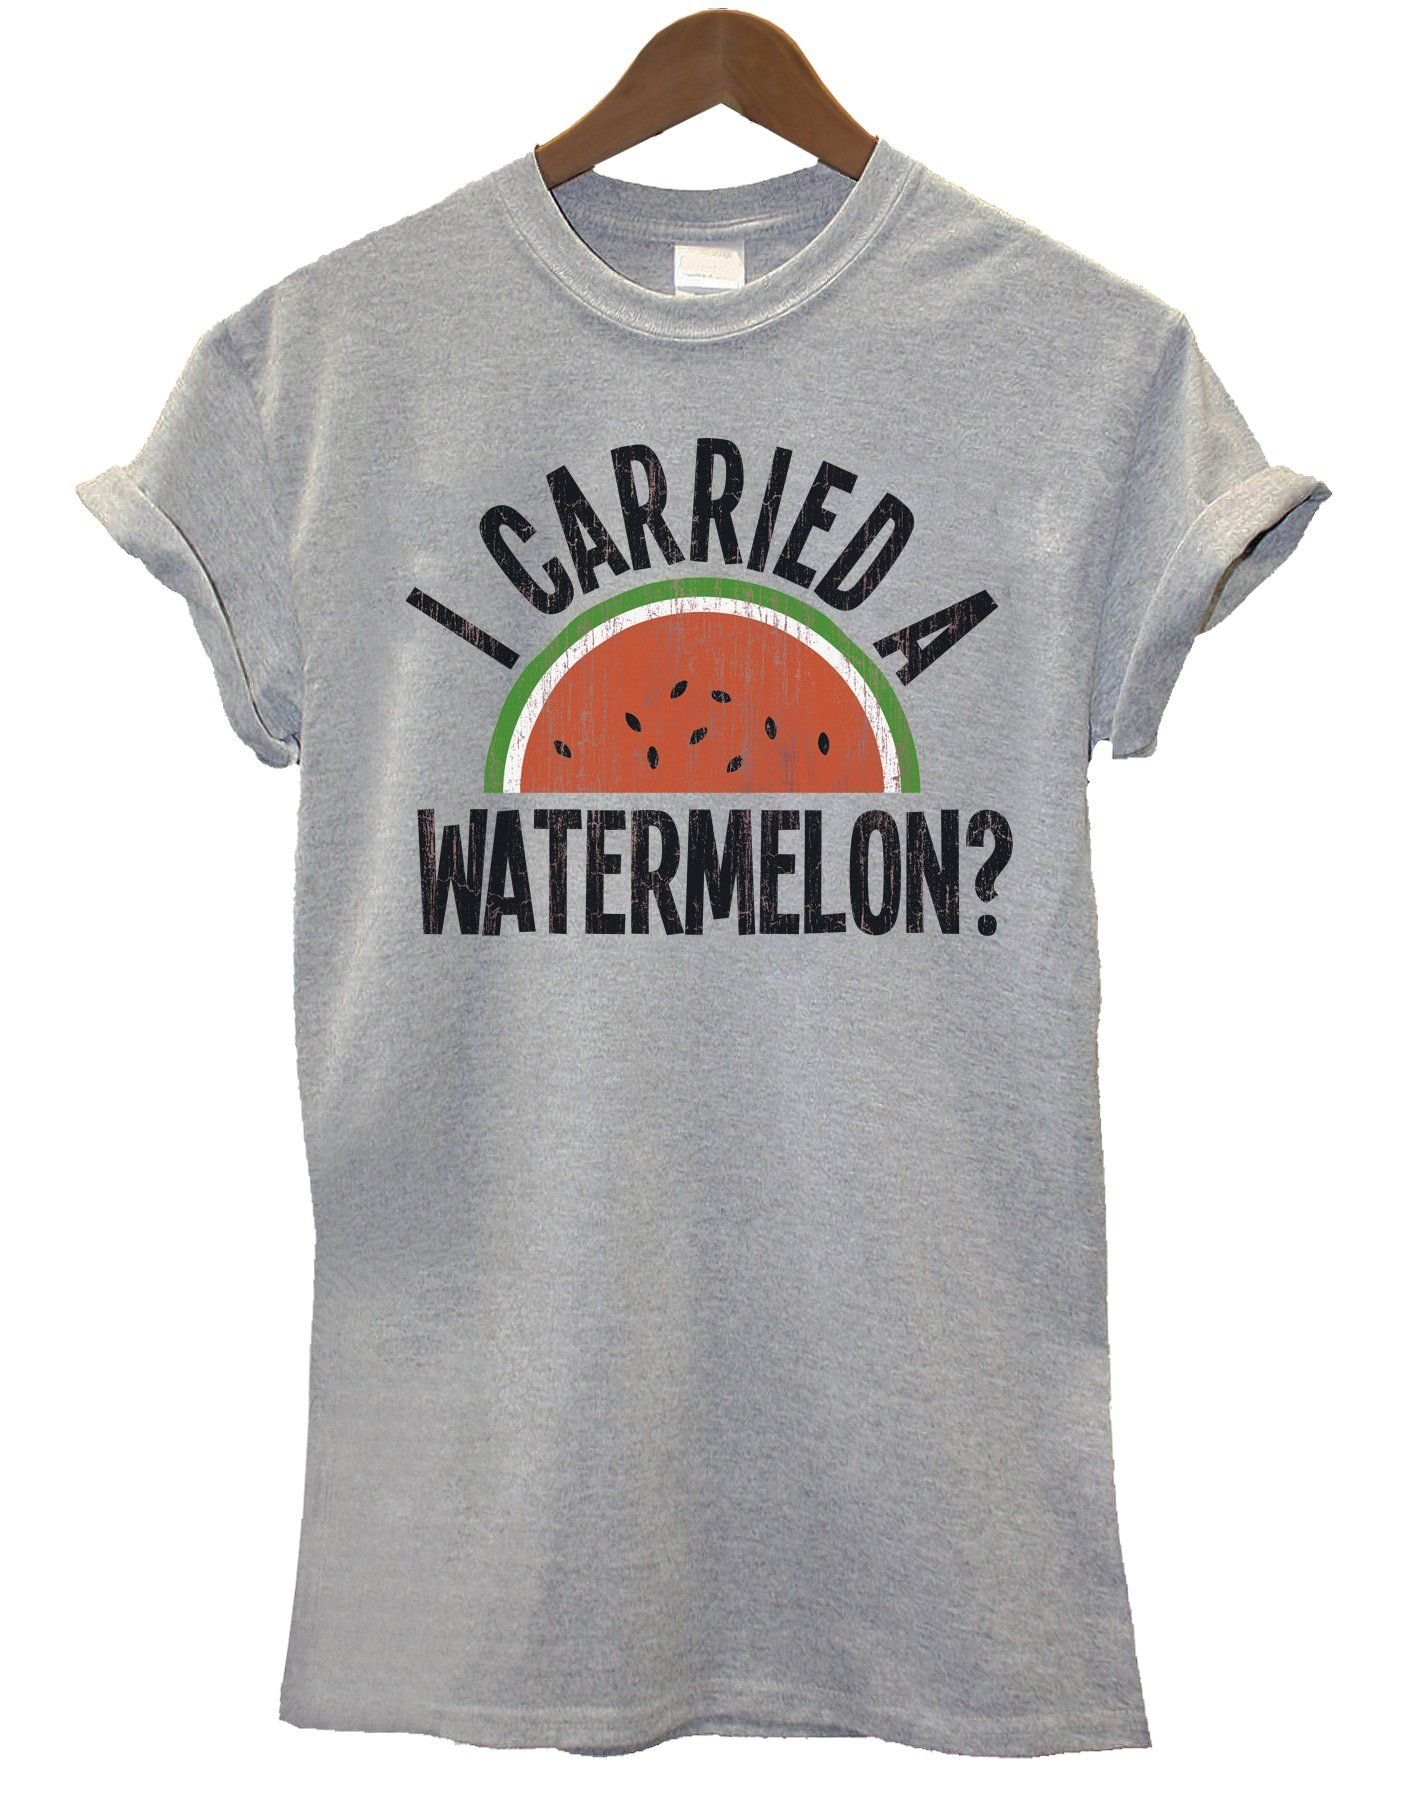 c04fb75b6 XL) I Carried A Watermelon? Mens & Ladies Unisex Fit T-Shirt | Shirt ...